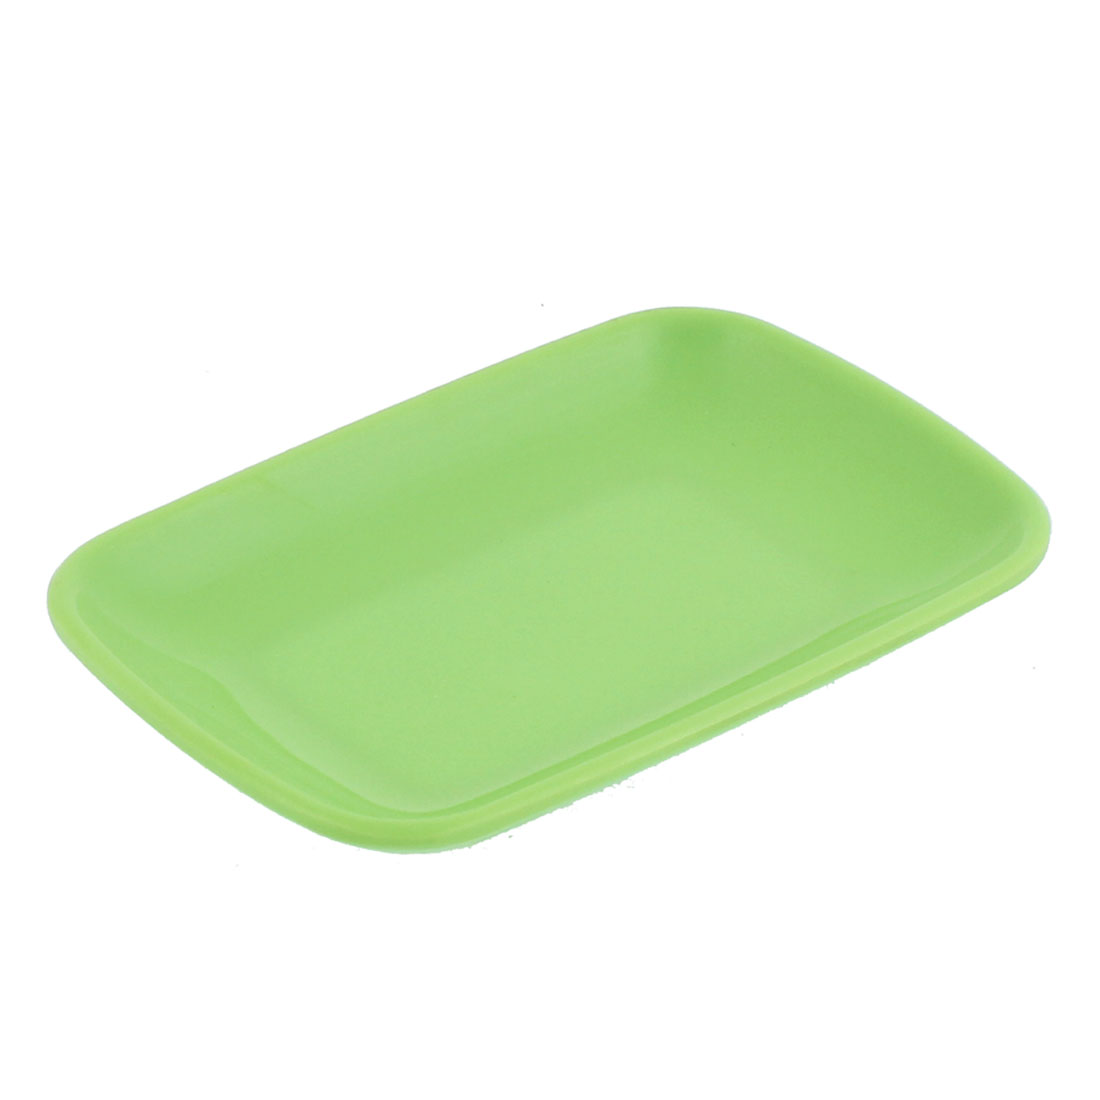 Plastic Rectangle Shape Dessert Cake Appetizer Plate Green